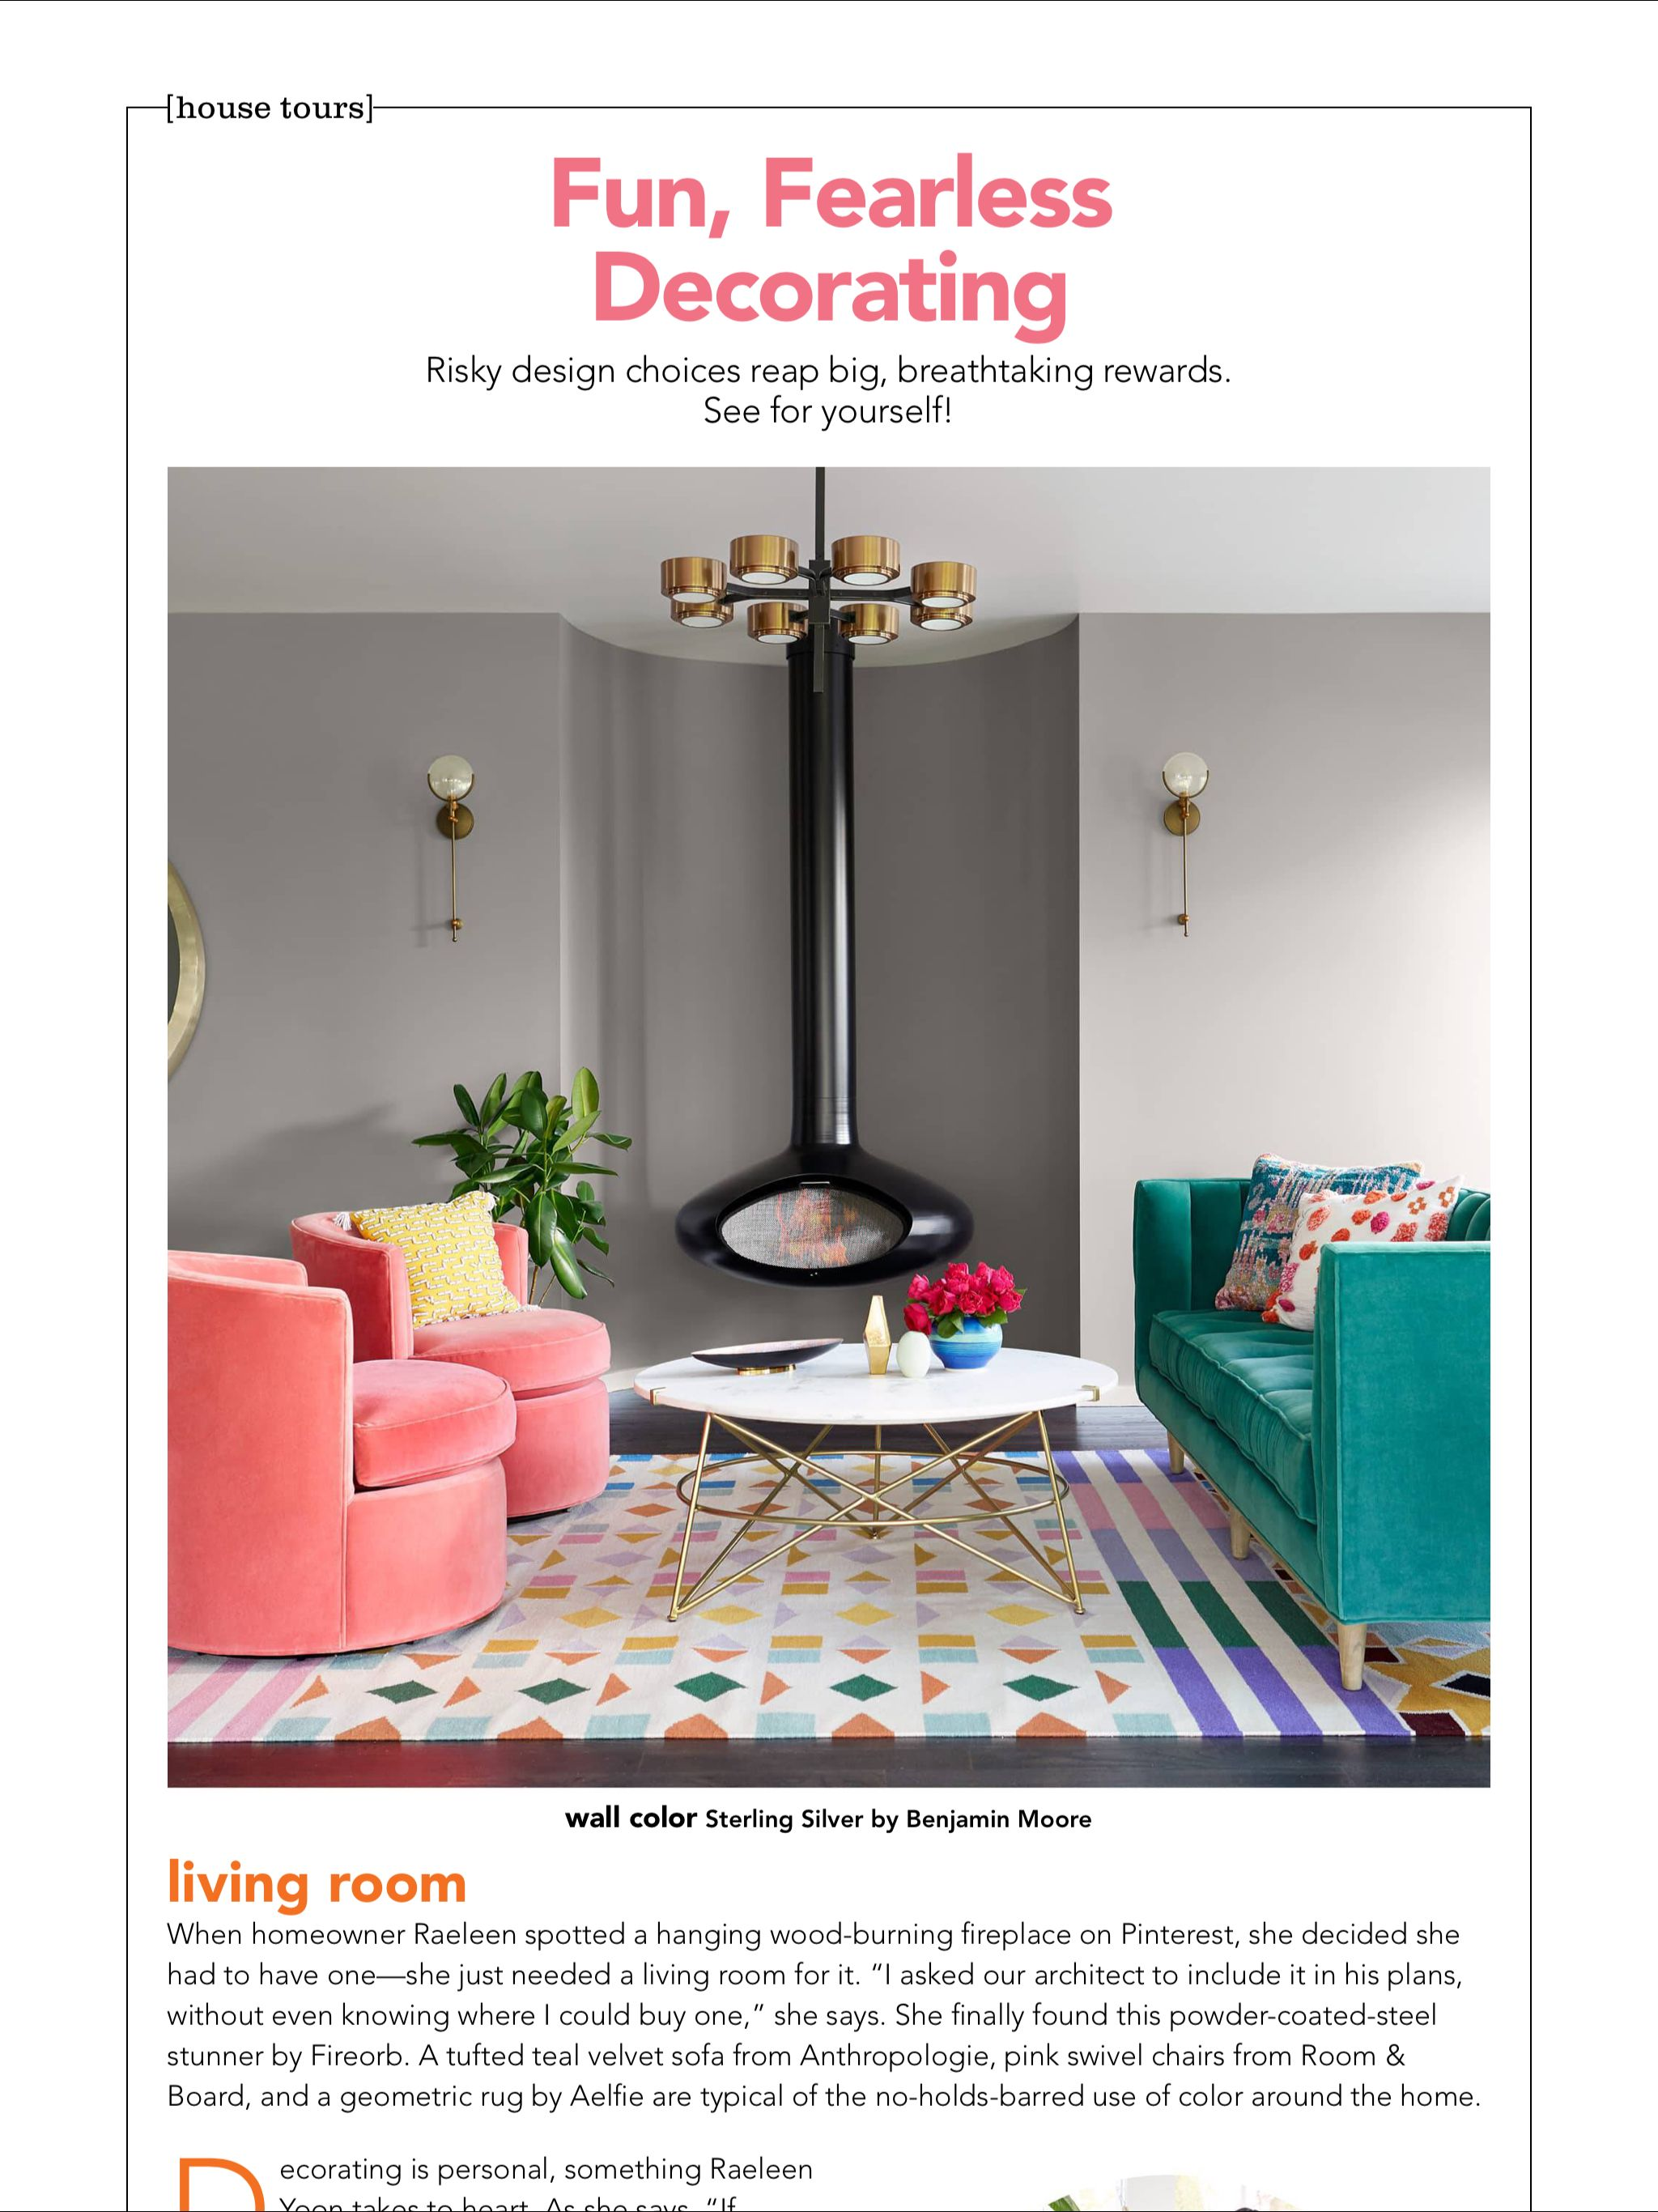 fun fearless decorating from hgtv magazine october 2018 read it rh pinterest com